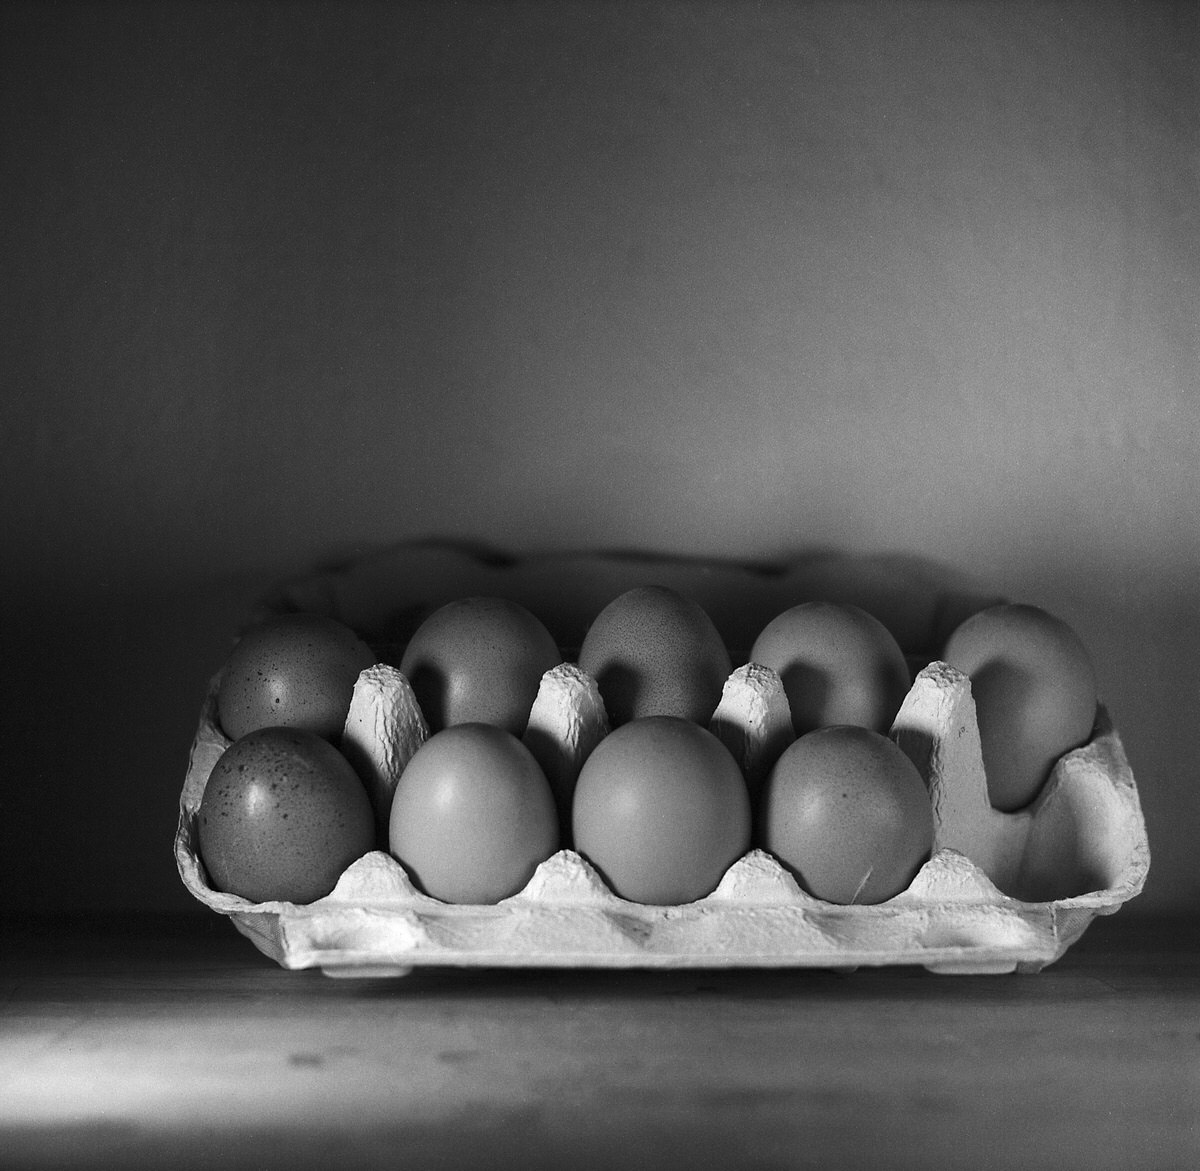 Eggs #2 – Still Life Photography - Yashica MAT-124 with Fomapan 200 Creative